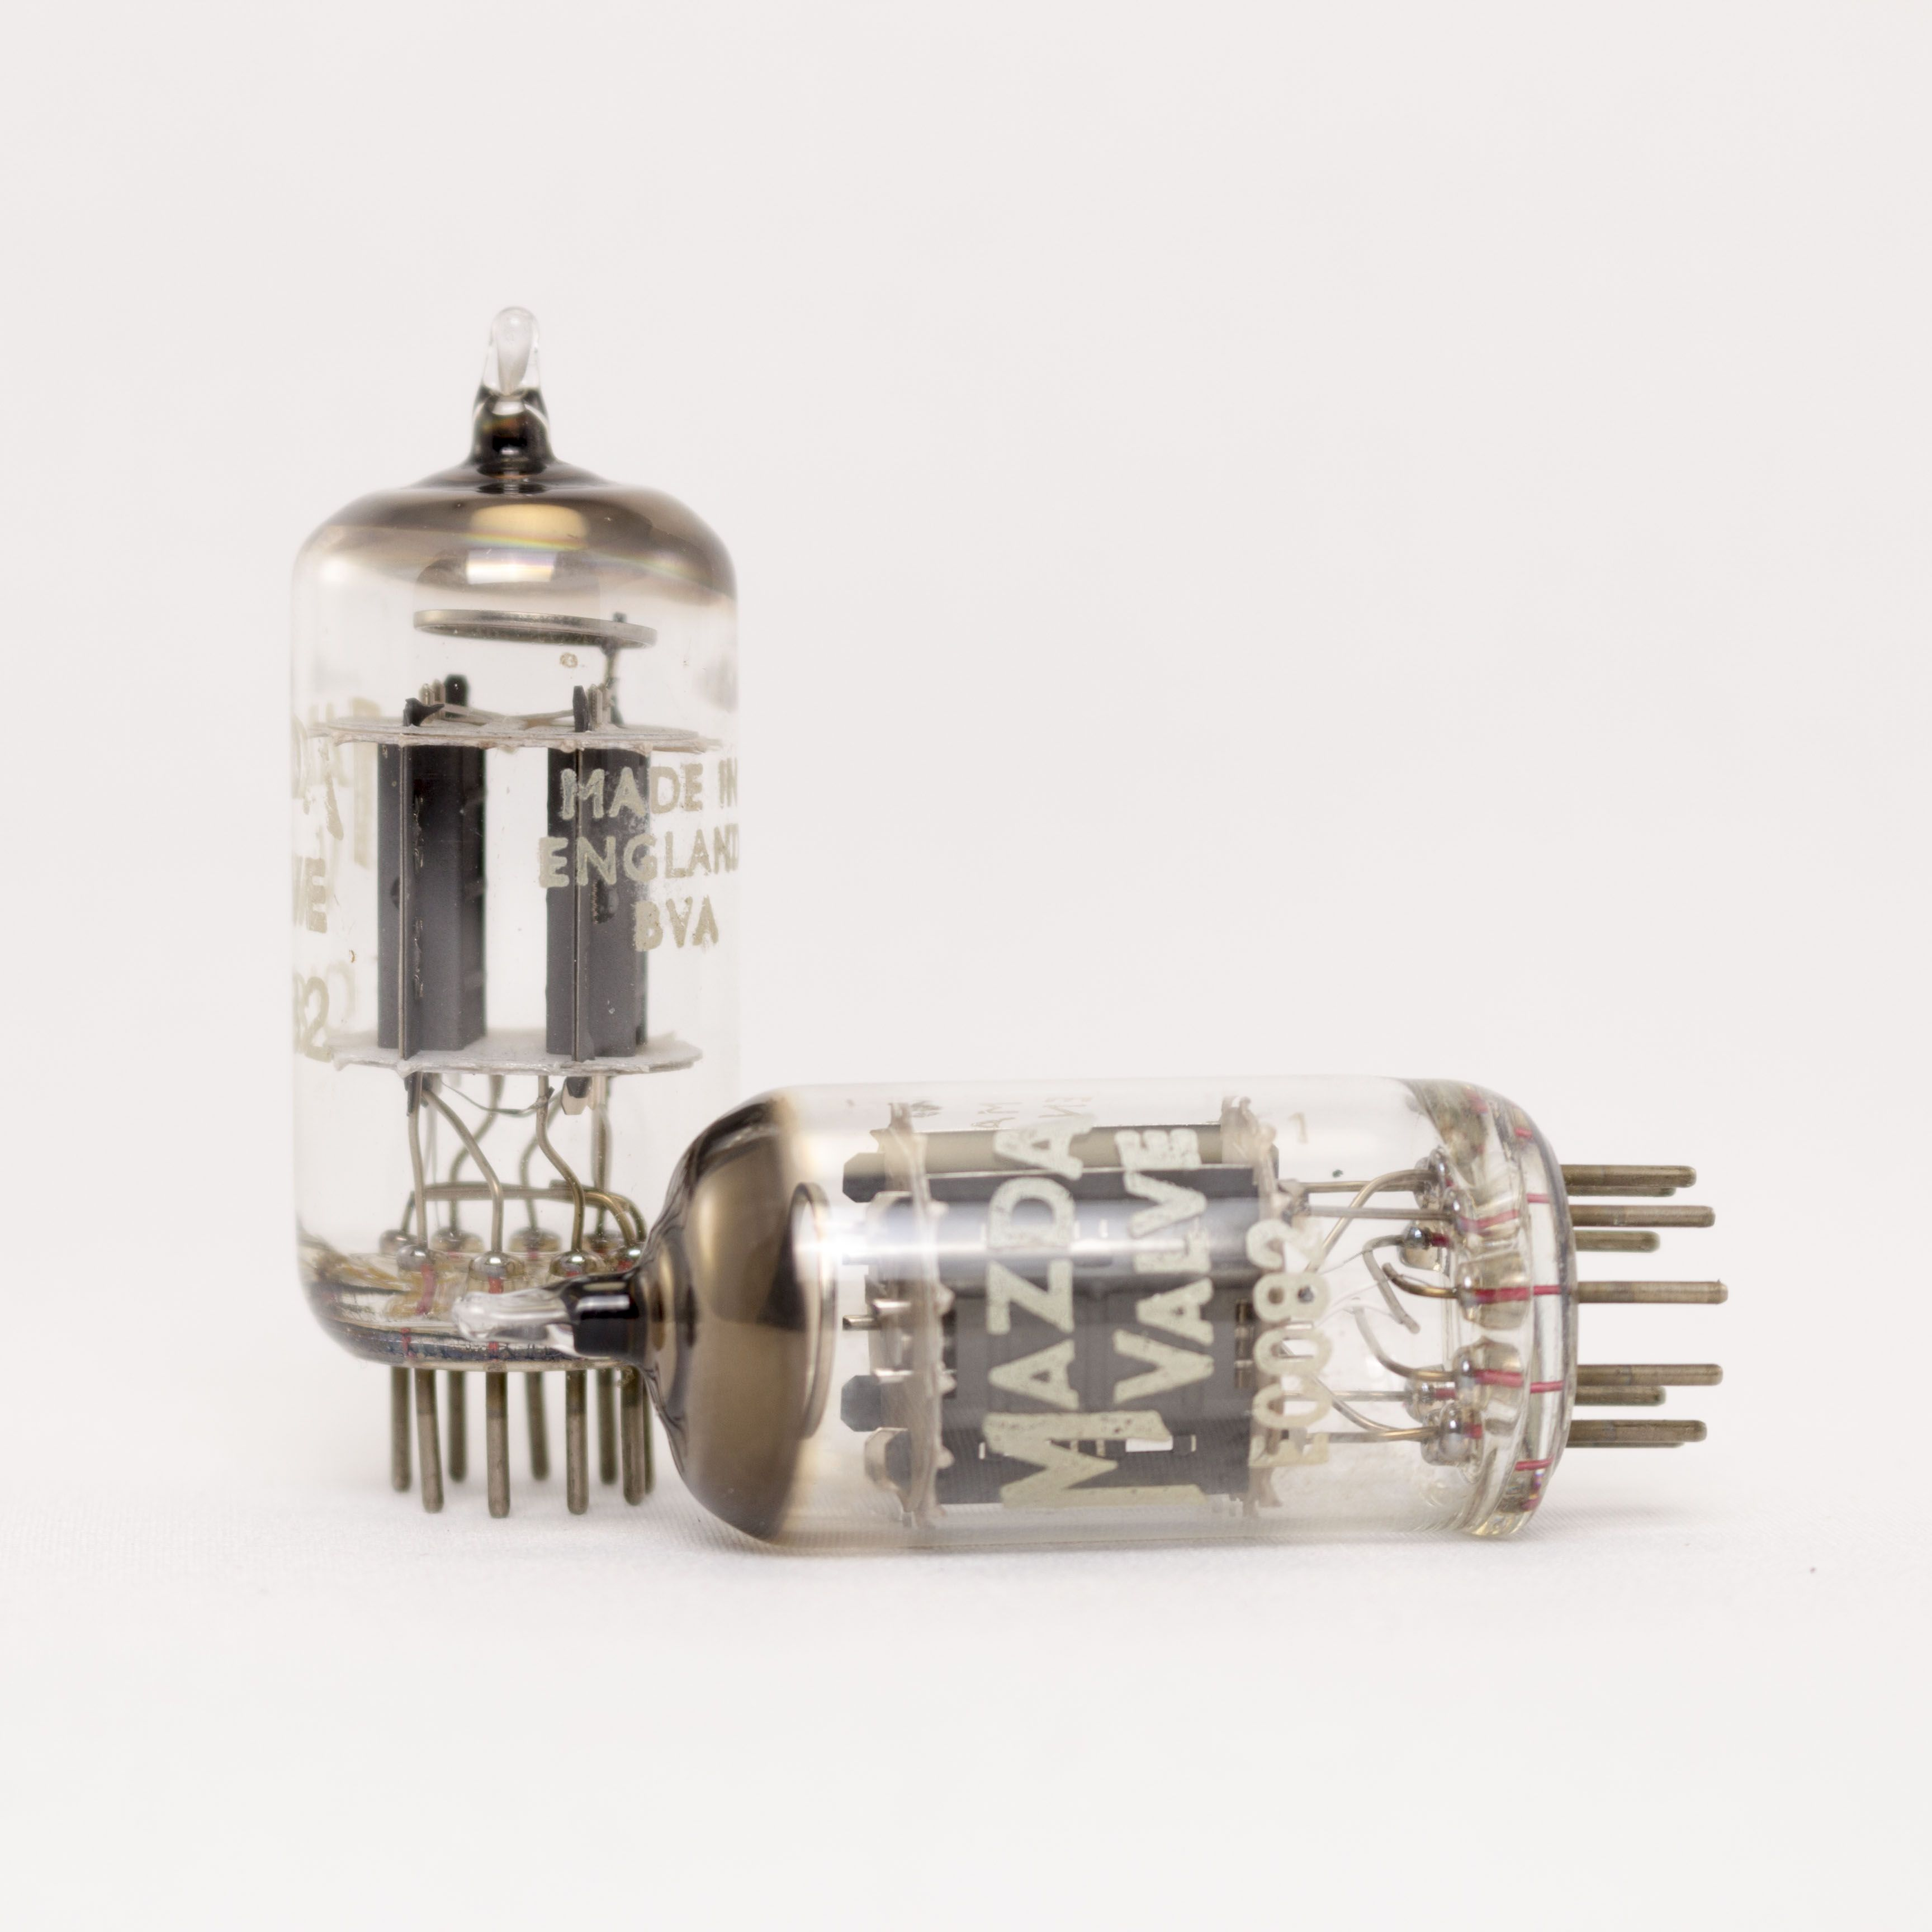 Matched Pair Mazda 12au7 Ecc82 Uk Vacuum Tubes 15mm Ribbed Plates Like Mullard Brimardetails Vacuum Tube Tube Vacuums